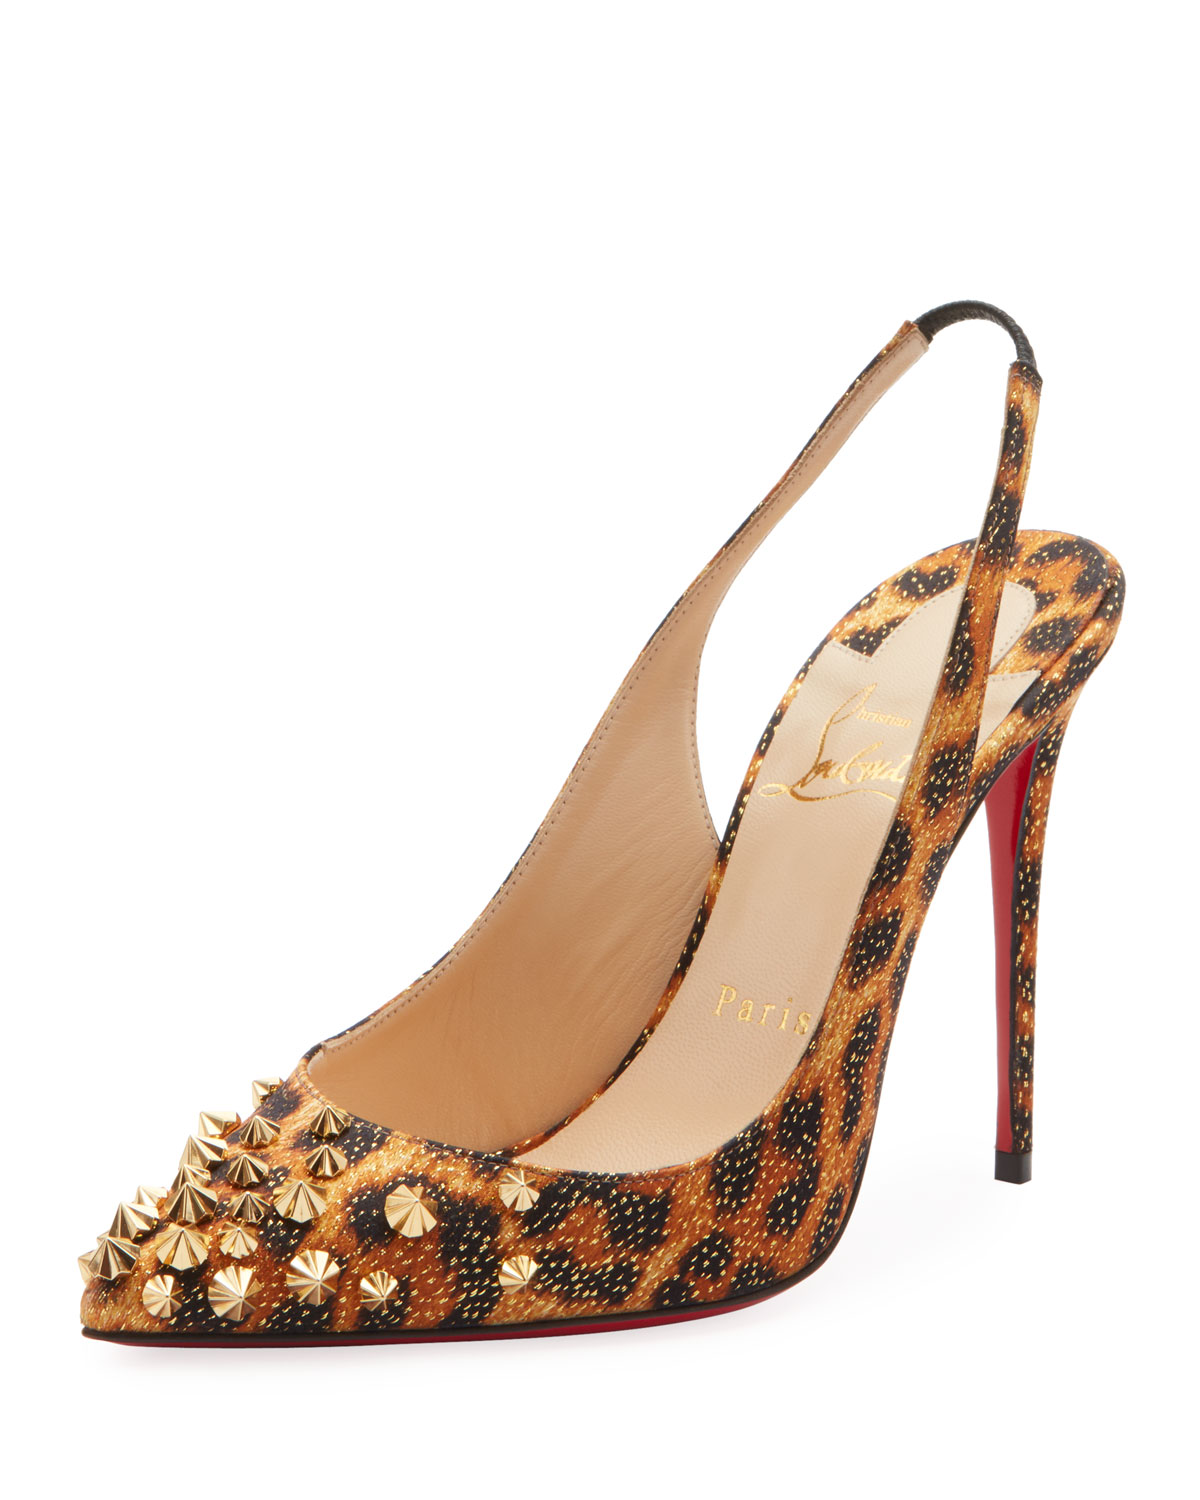 b96fe181e7bd Christian Louboutin Drama Sling 100mm Spike Leopard Red Sole Pumps ...